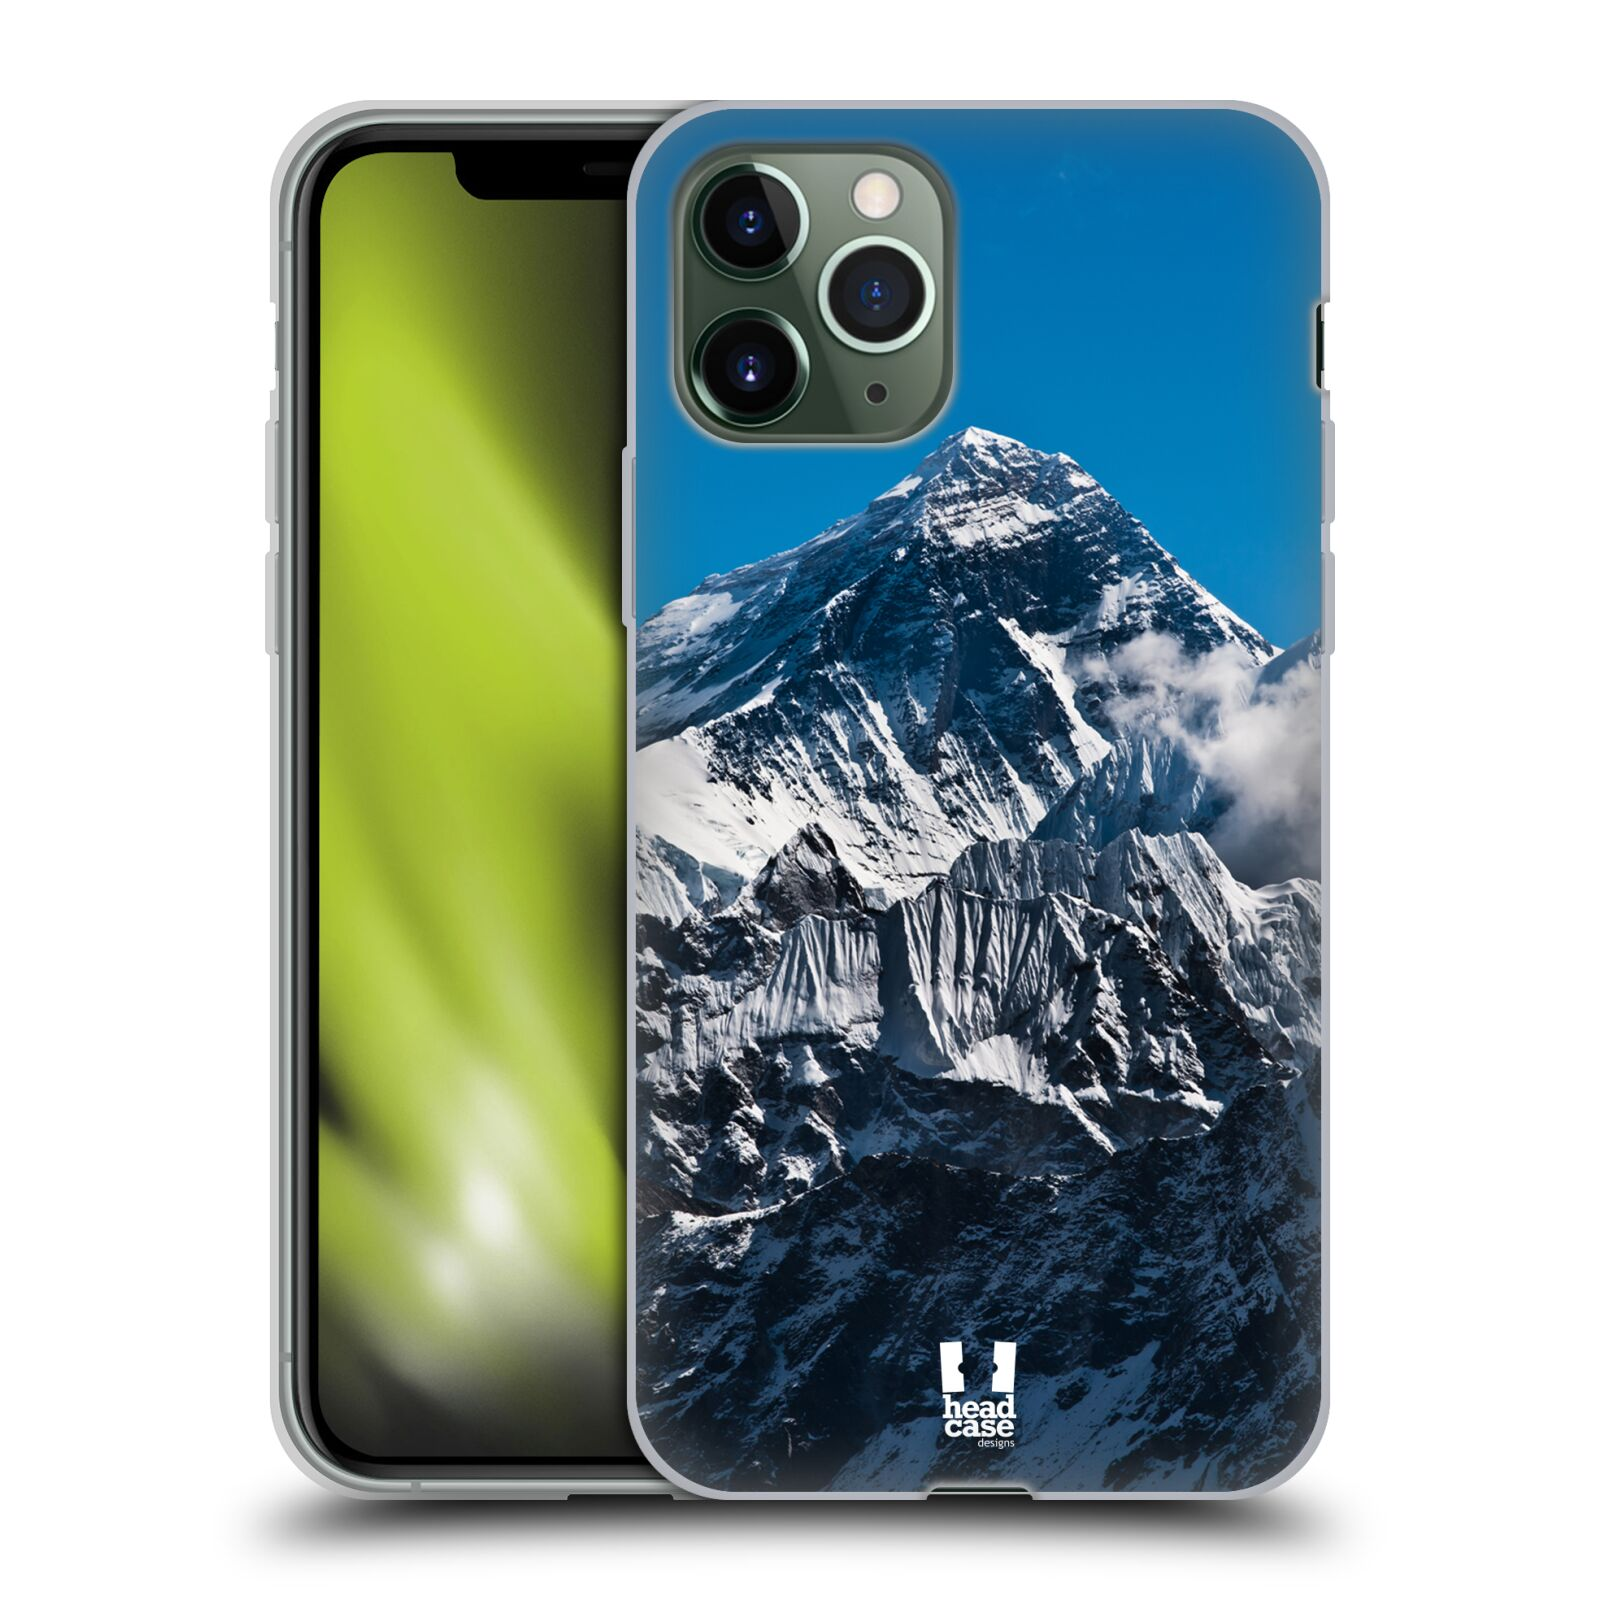 karl krytu na iphone 7 plus | Silikonové pouzdro na mobil Apple iPhone 11 Pro - Head Case - Mount Everest Peak